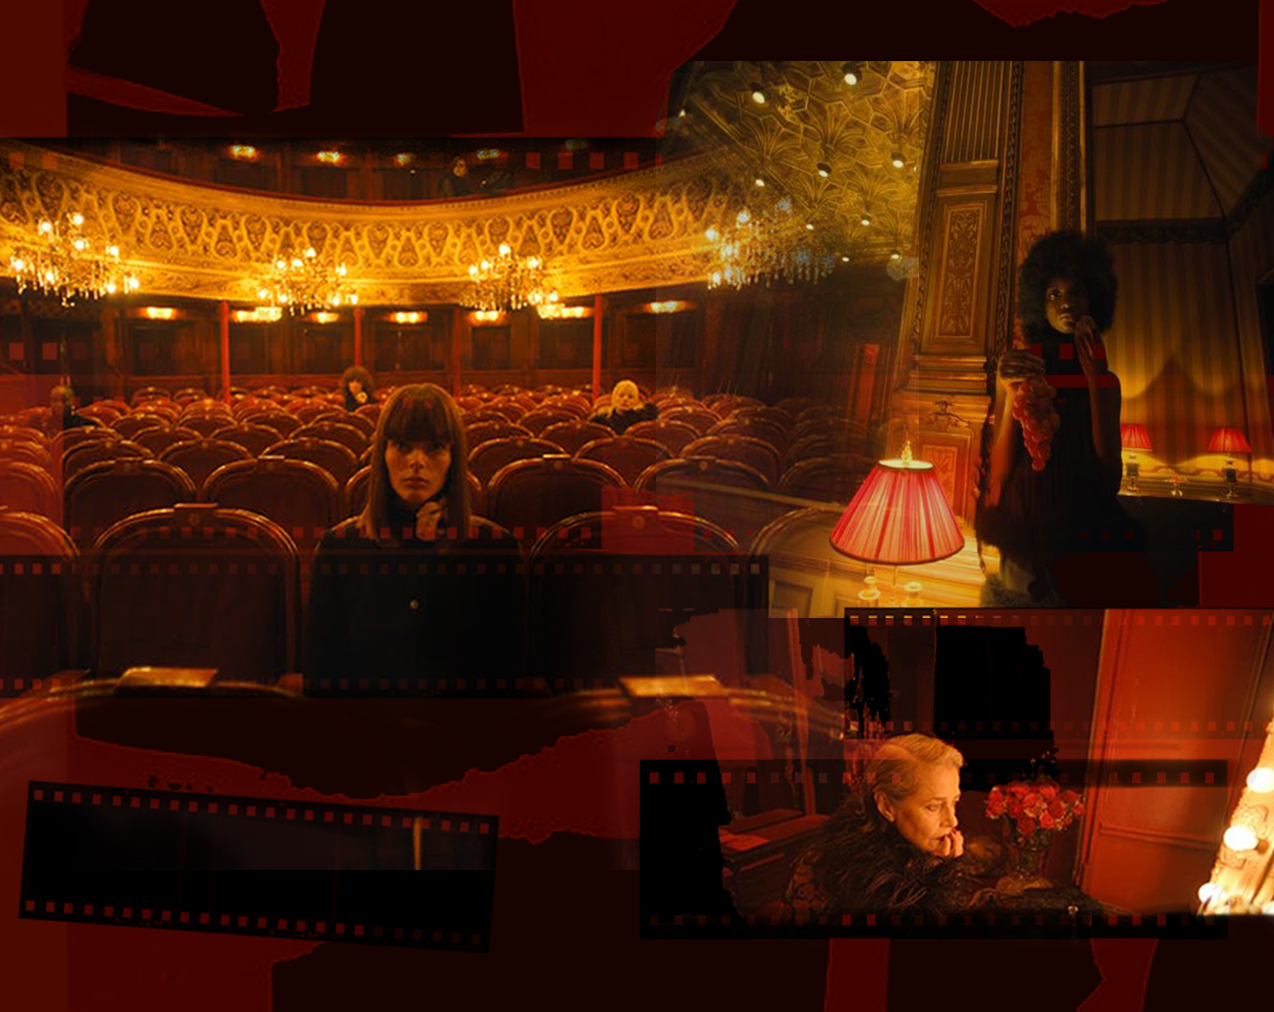 A digital collage with images from Saint Laurent's Summer of 21 film